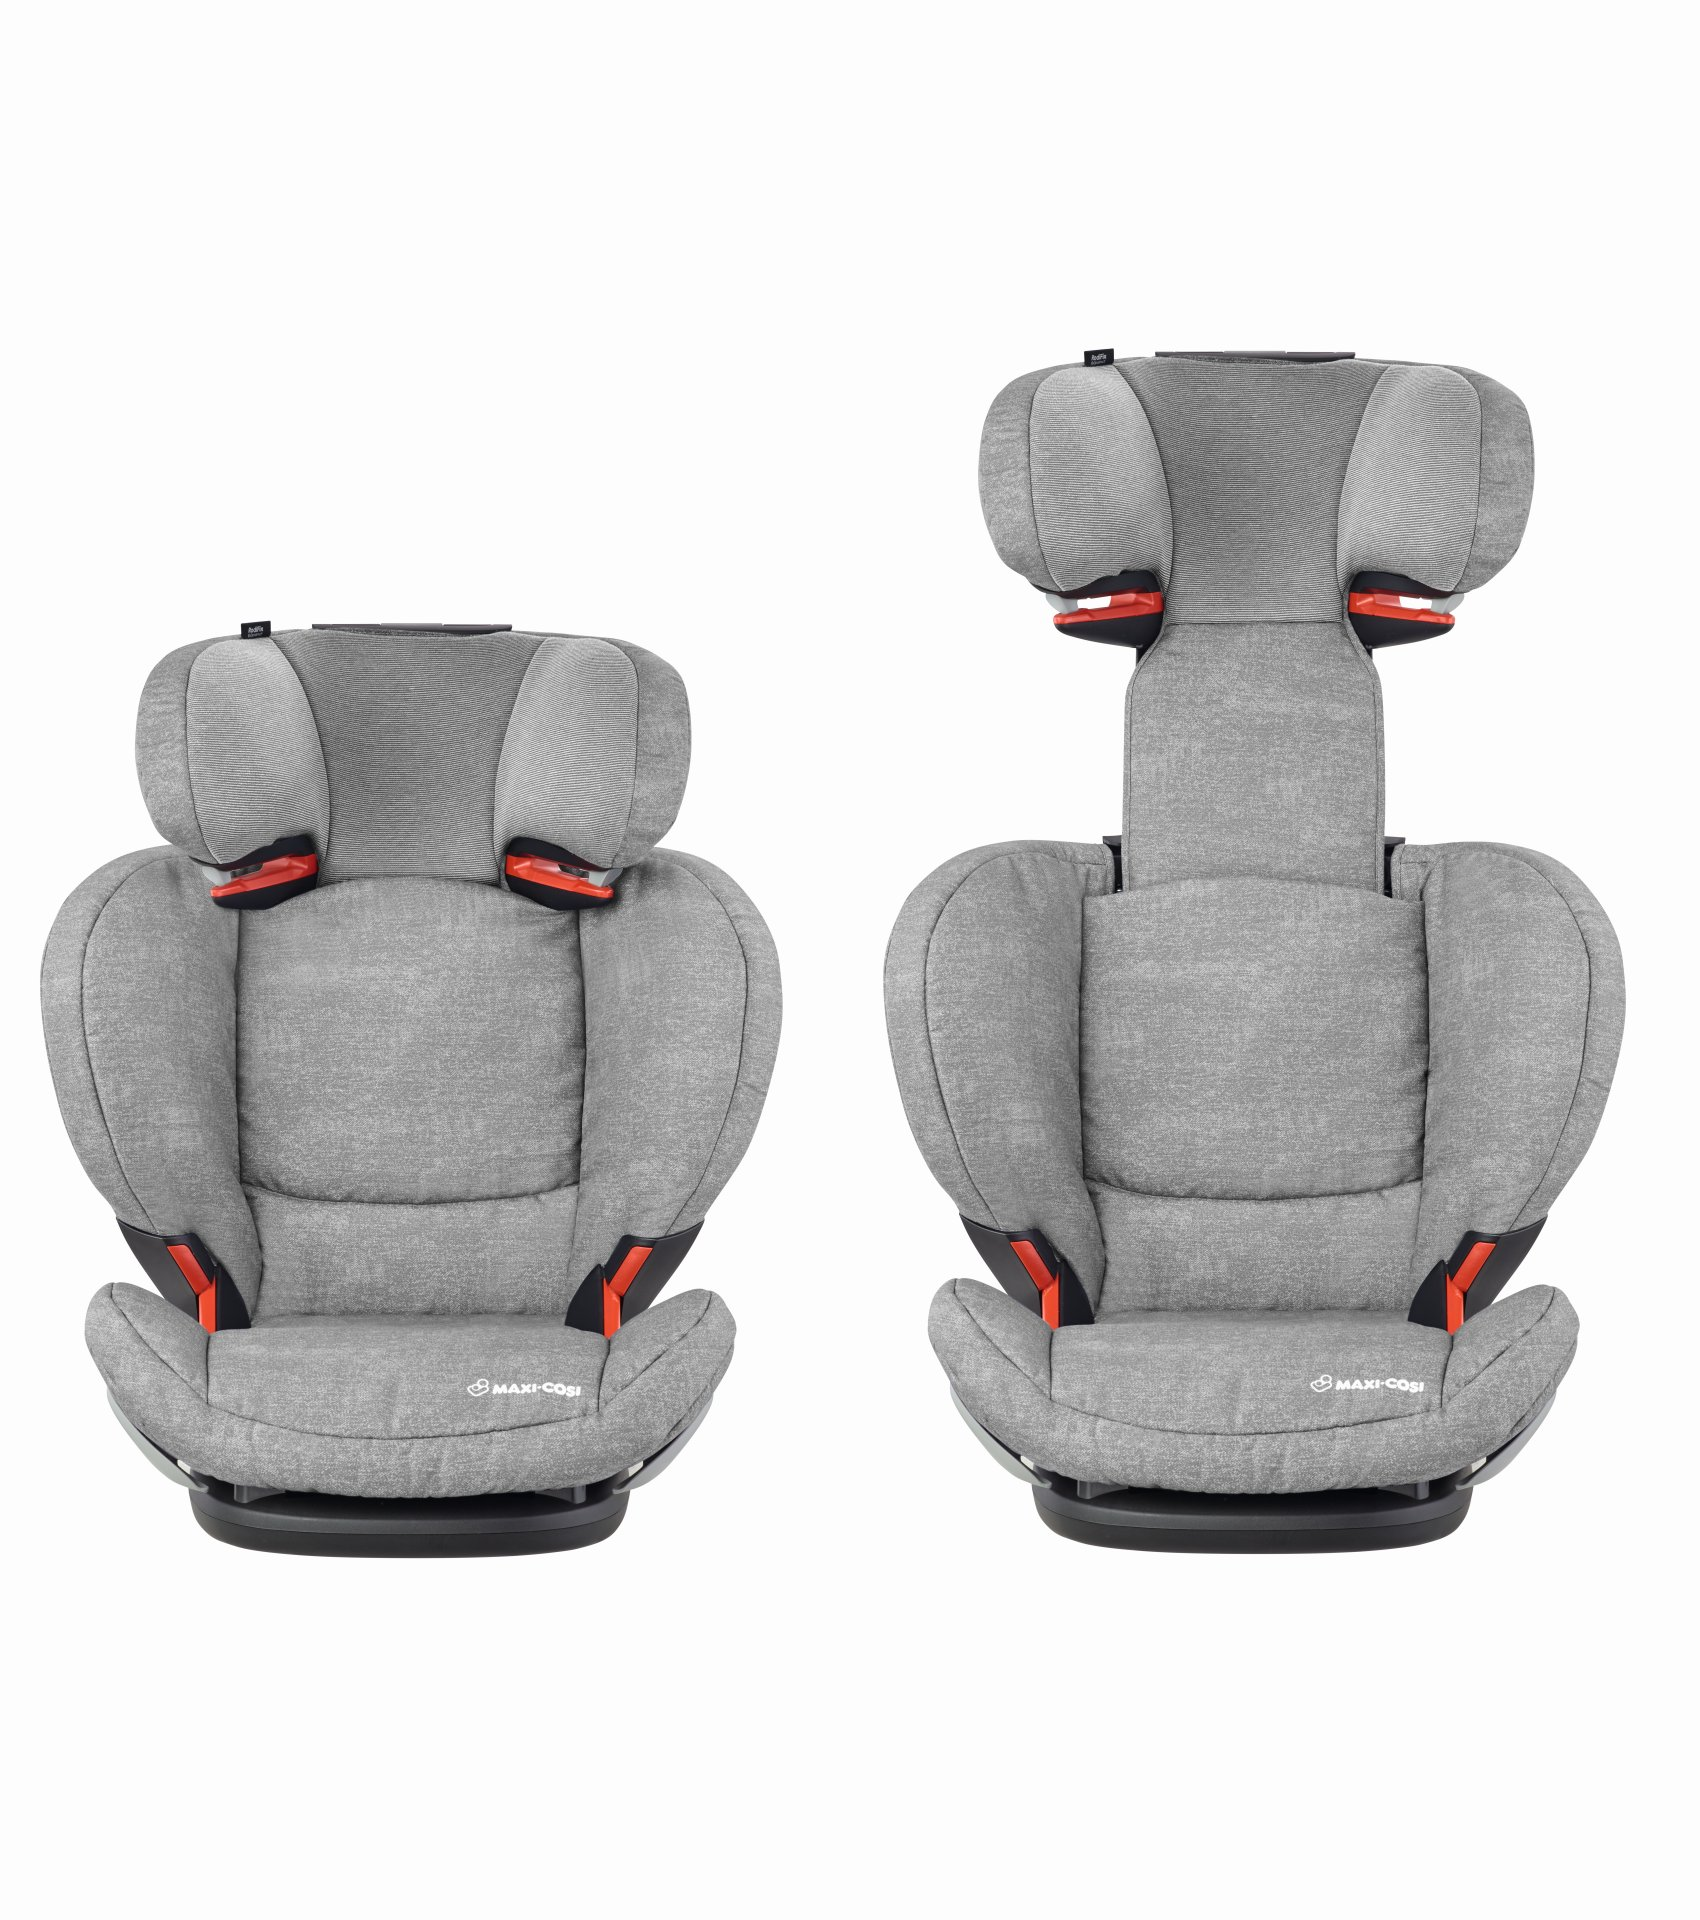 maxi cosi safety seat rodifix airprotect 2018 nomad grey buy at kidsroom car seats. Black Bedroom Furniture Sets. Home Design Ideas